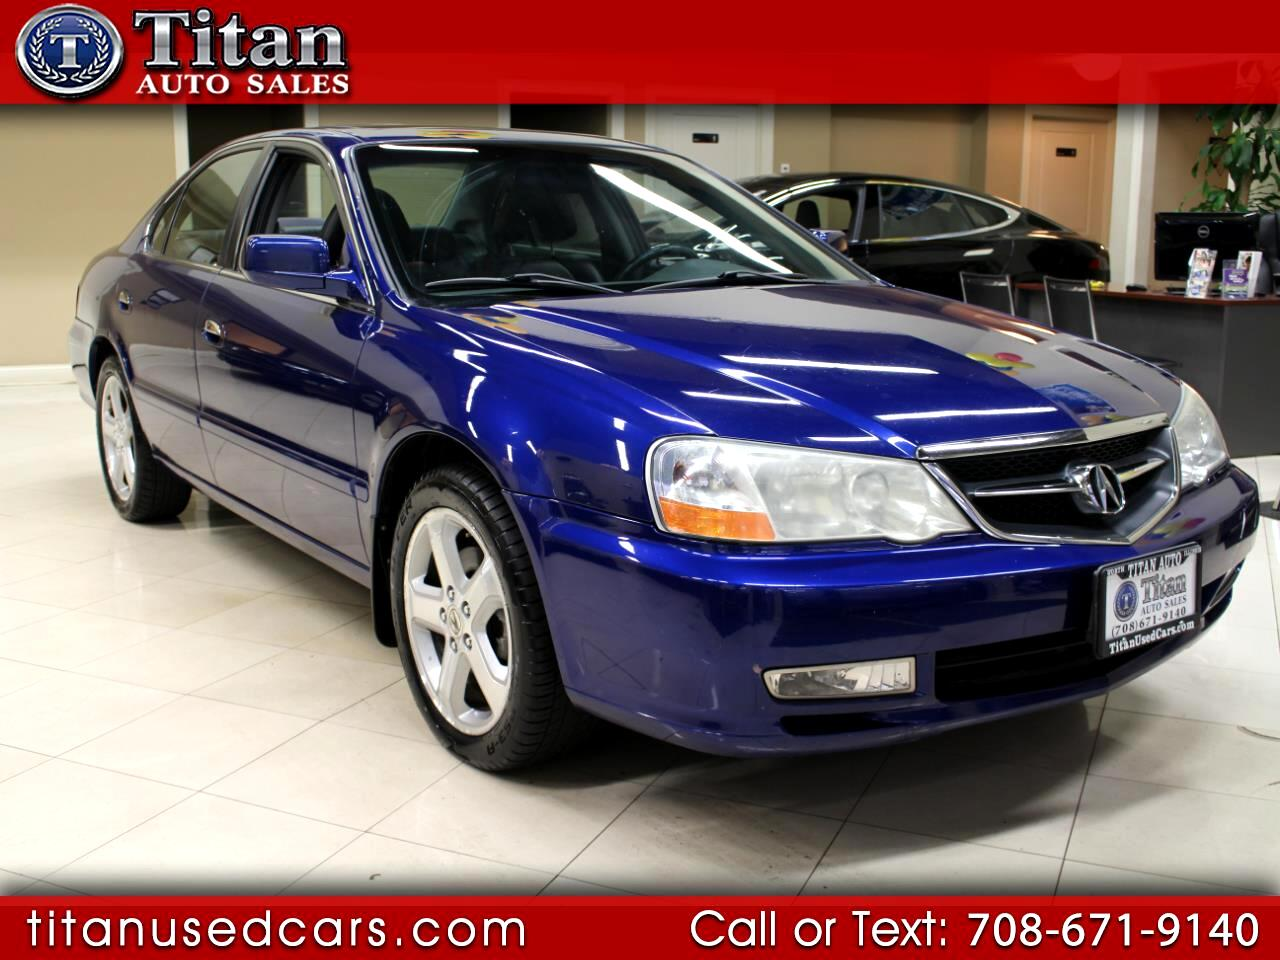 2002 Acura TL 4dr Sdn 3.2L Type S w/Navigation